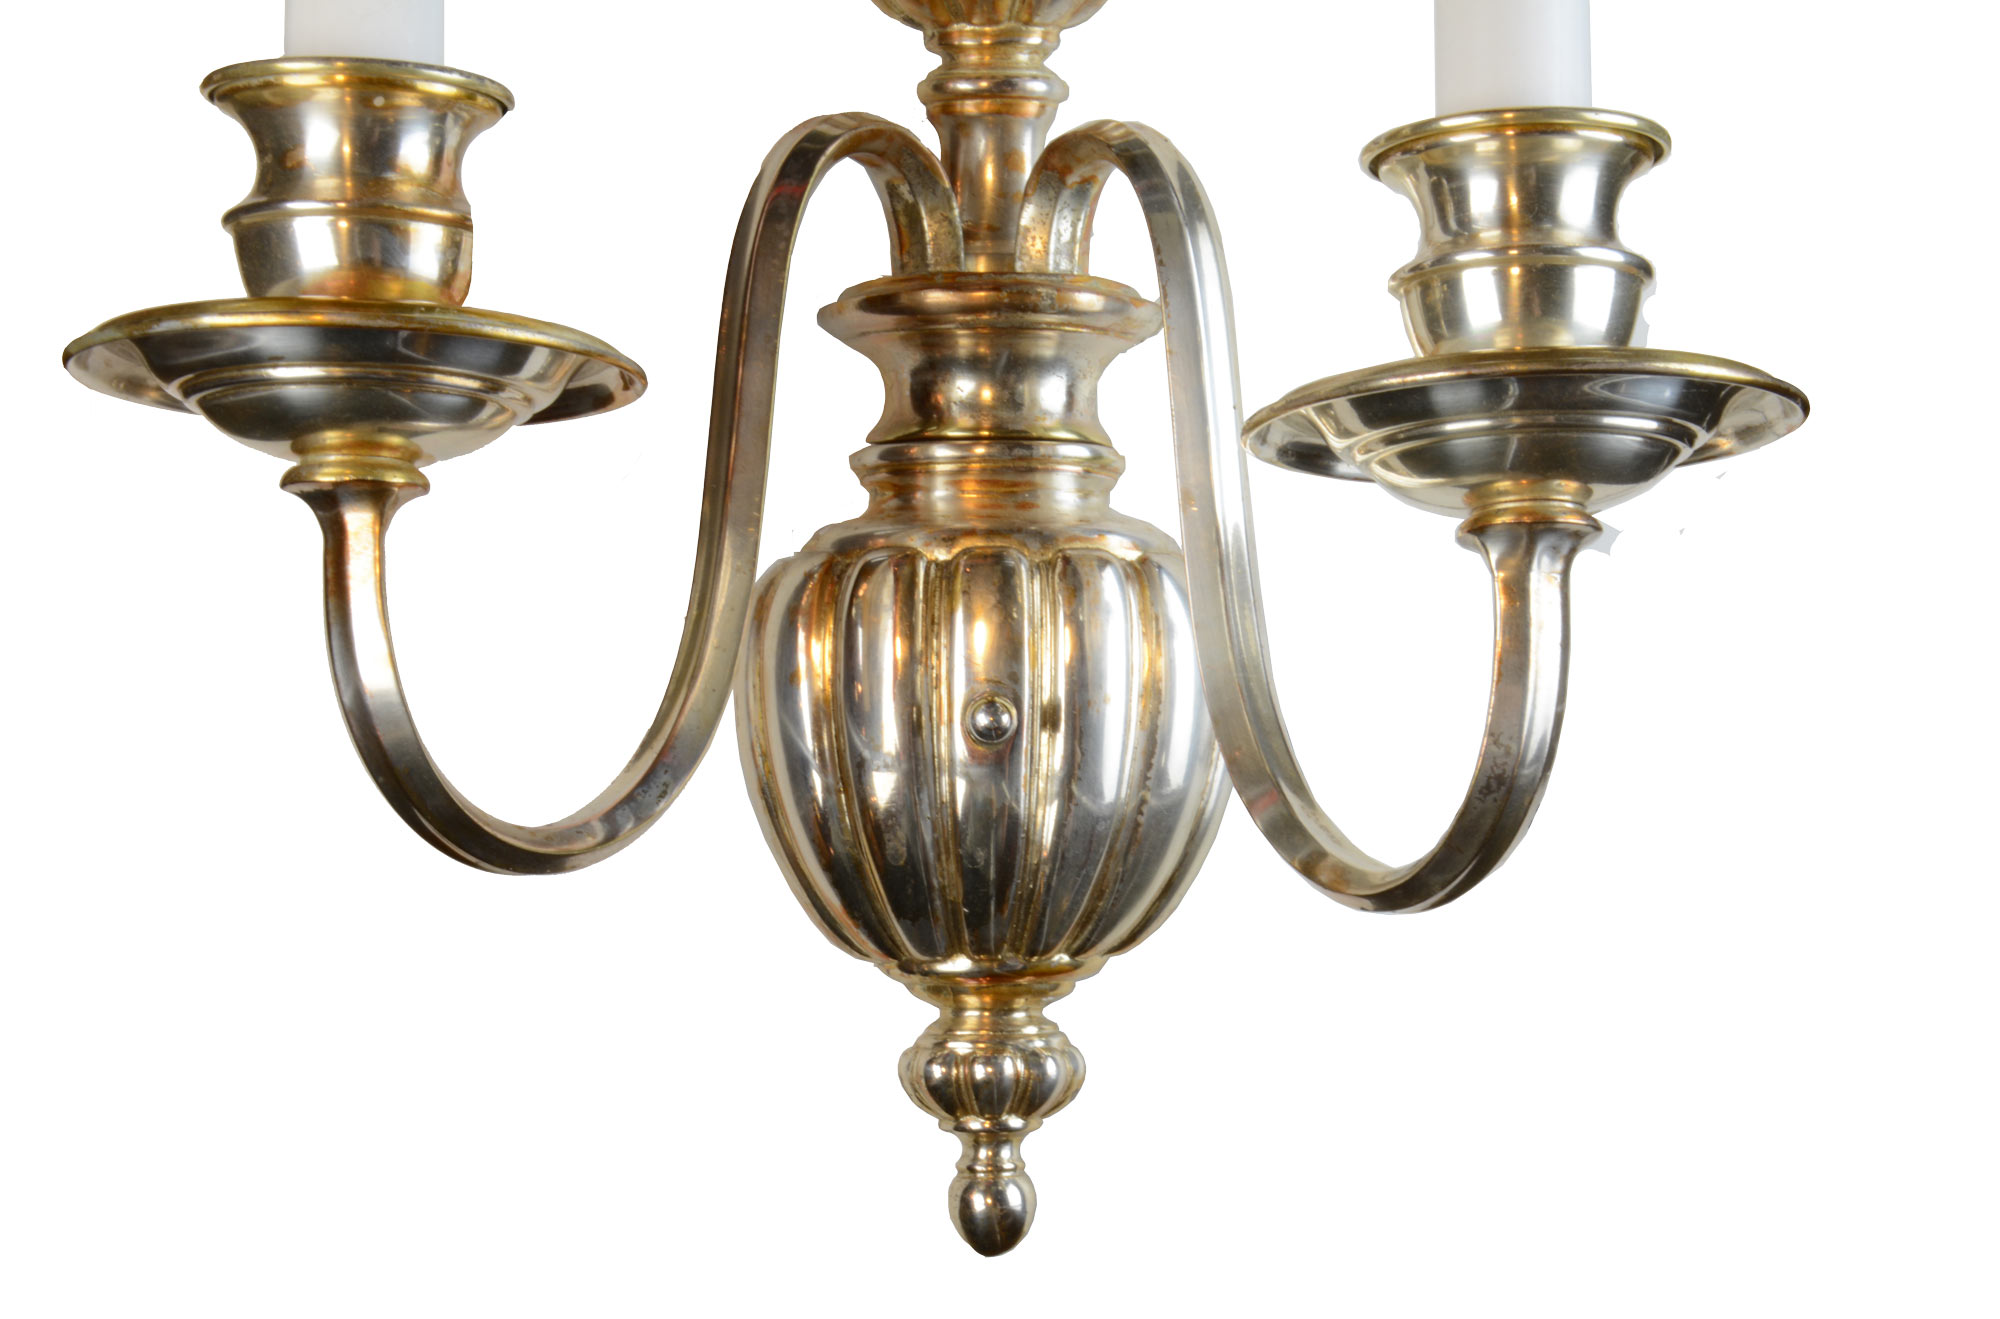 46755-two-arm-silver-sconce-MORE-DETAIL.jpg